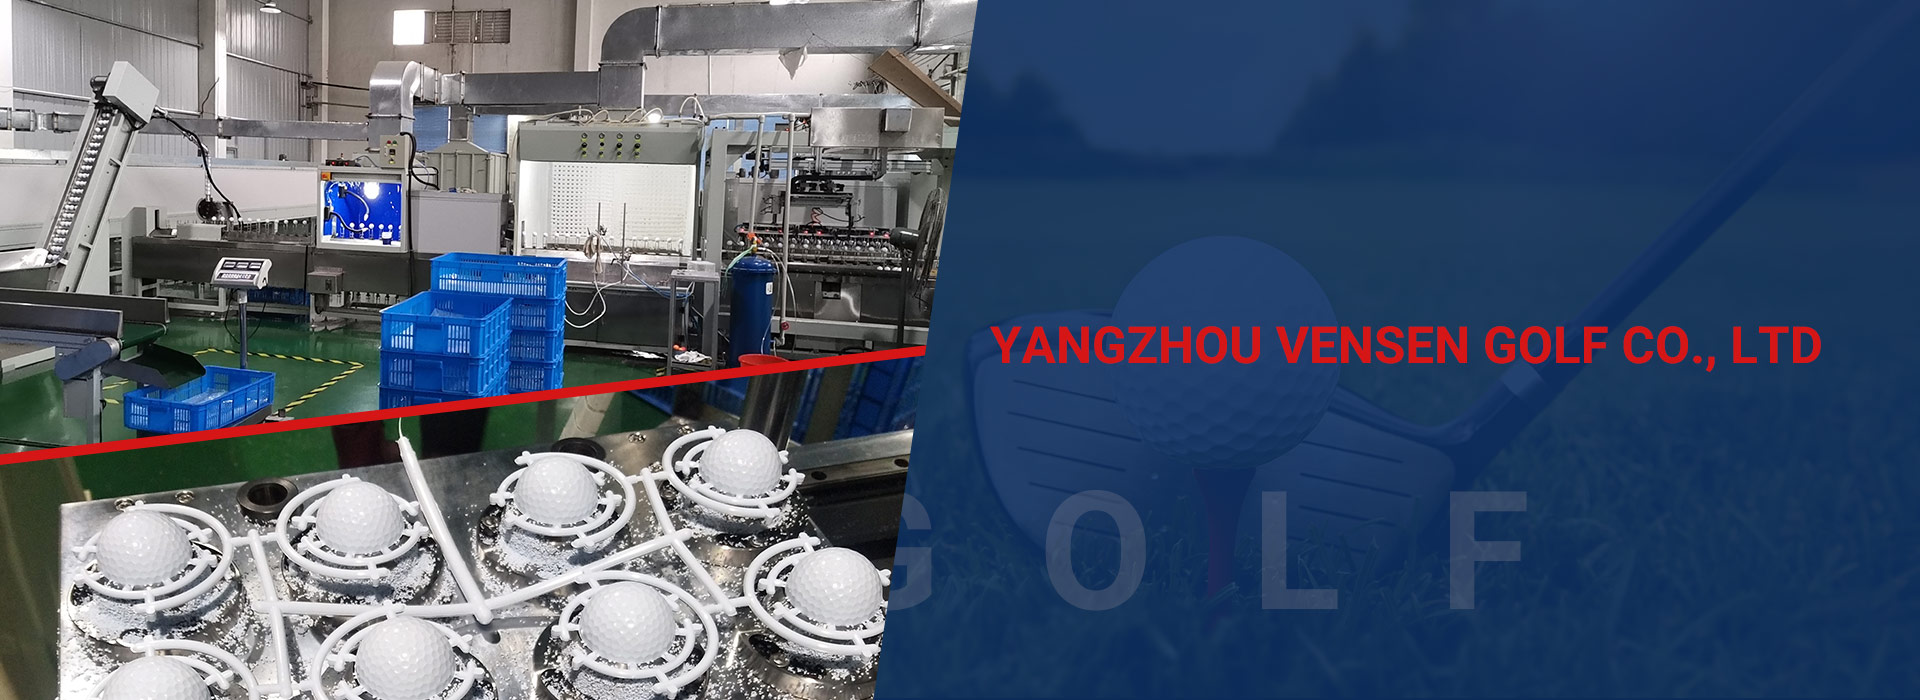 Yangzhou Vensen Golf Co., Ltd